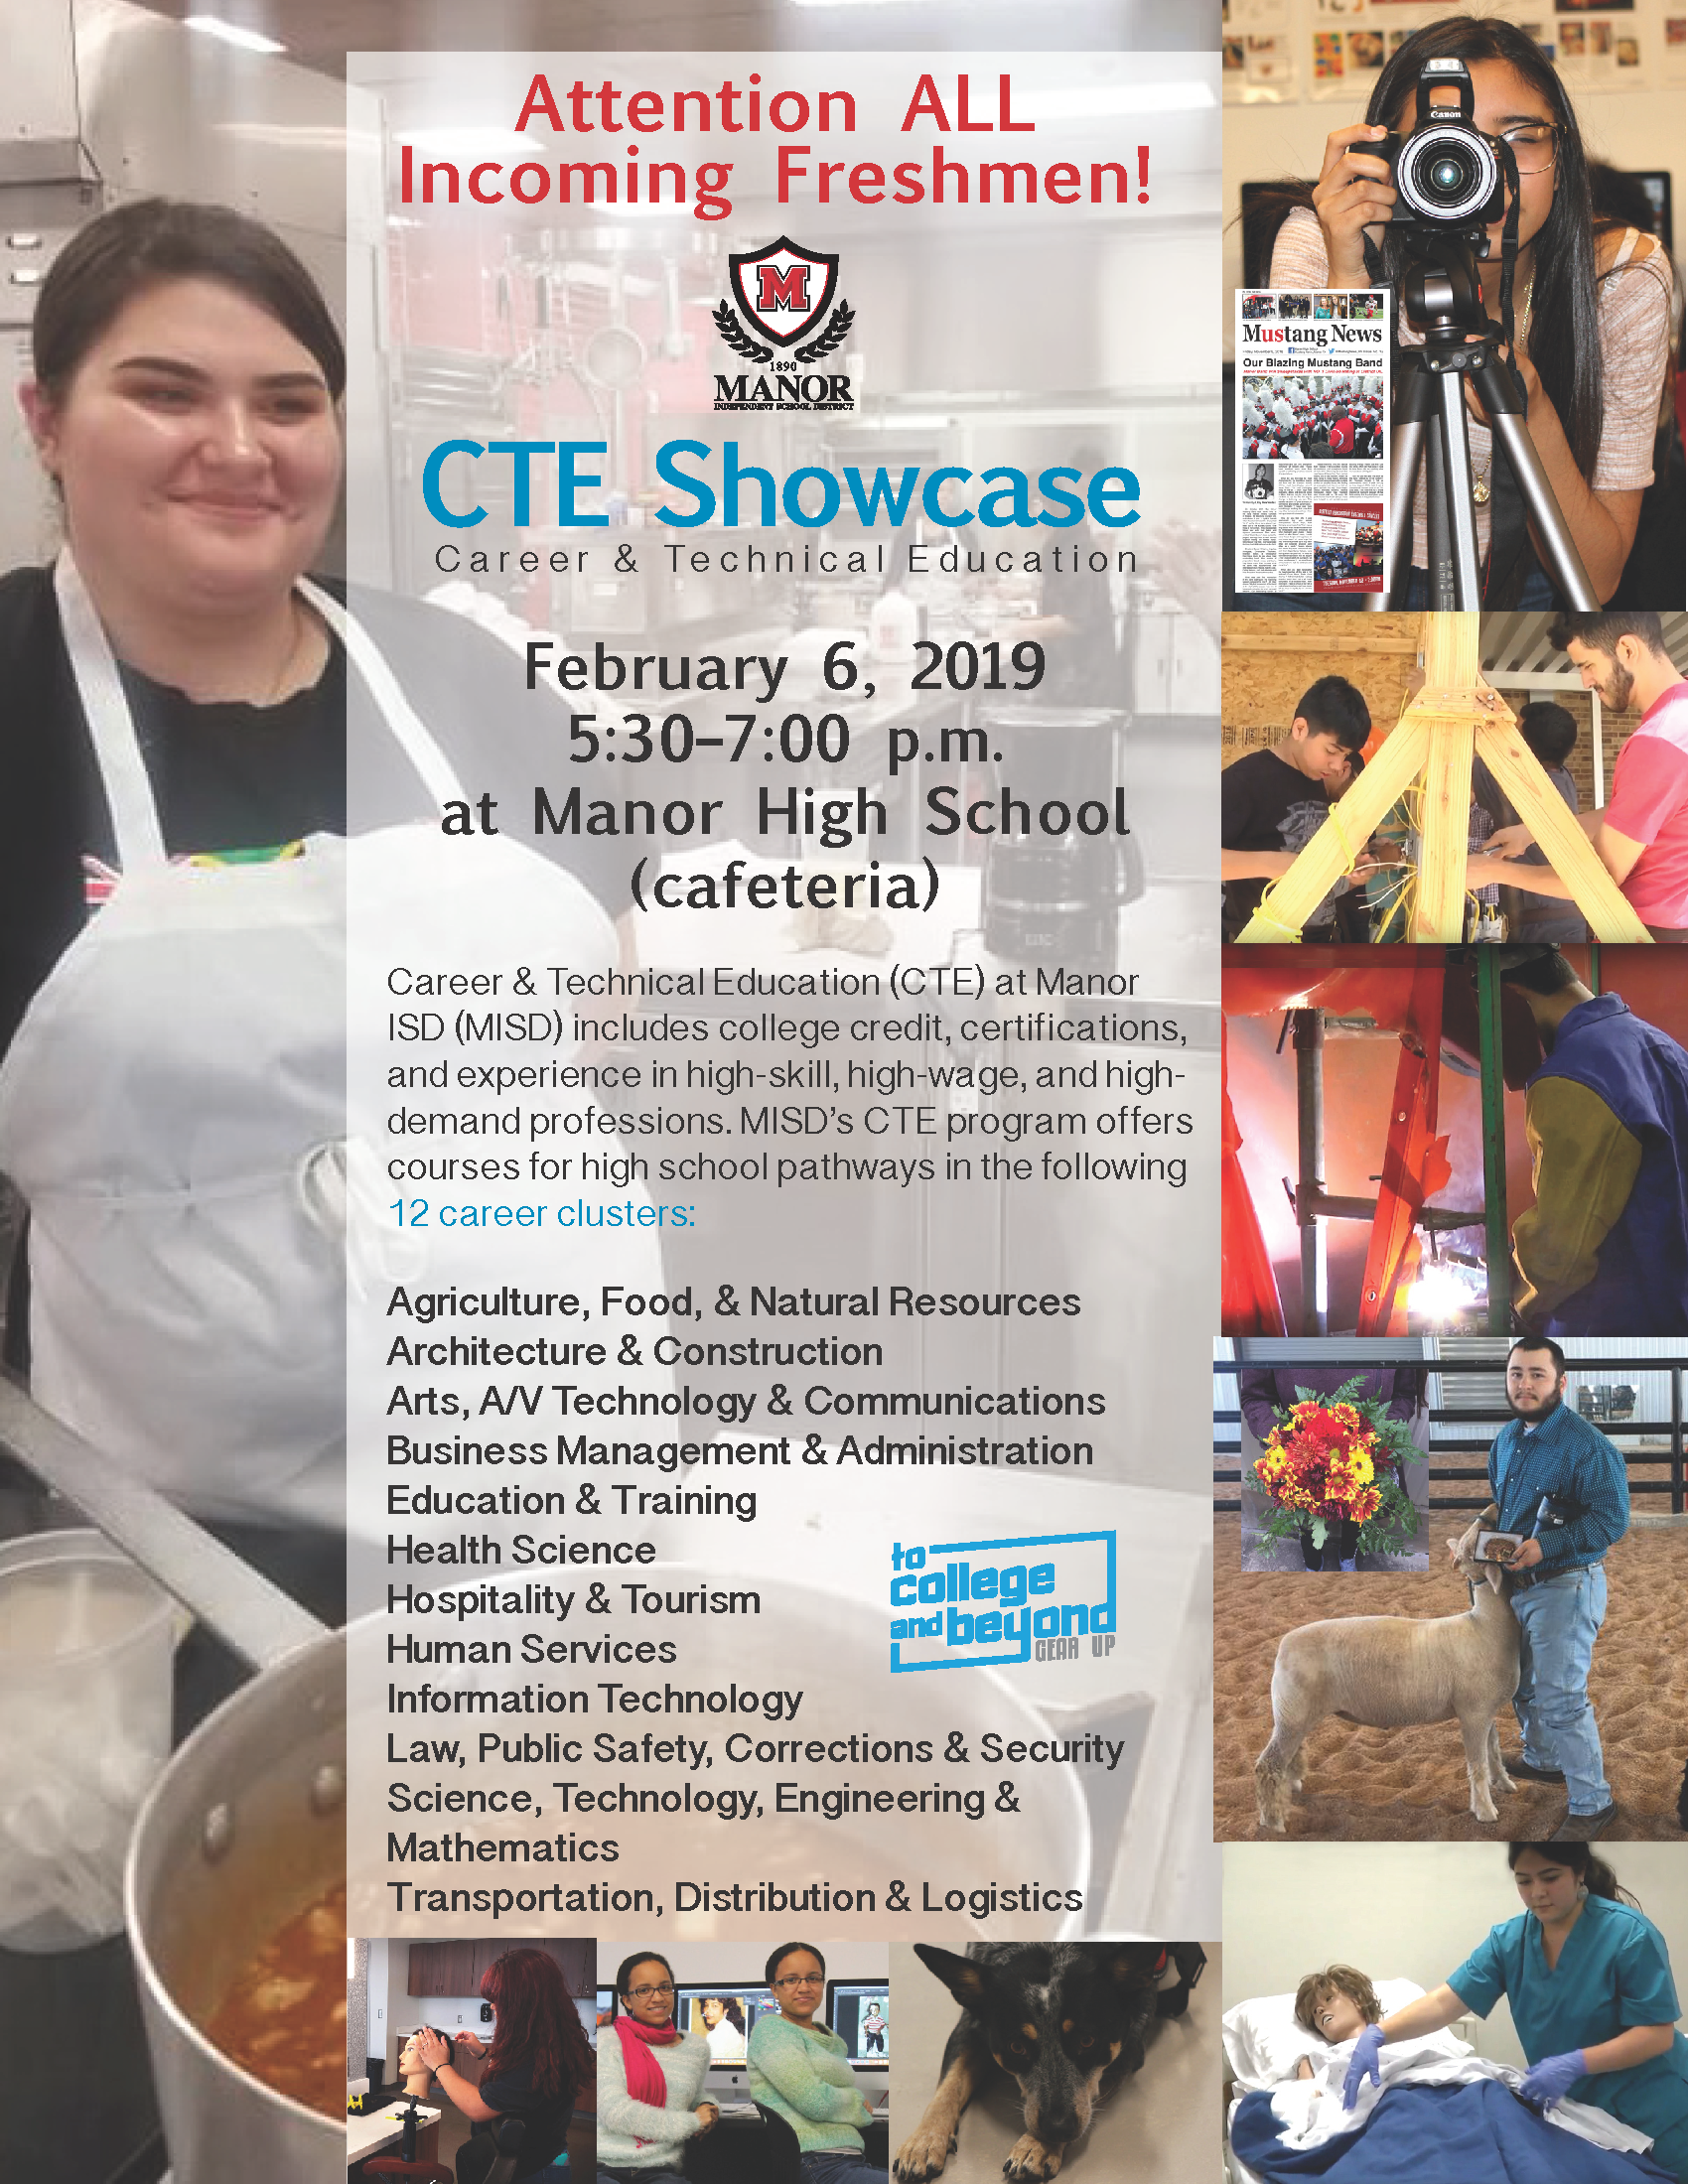 CTE Showcase Flyer for Feb. 6, 2019